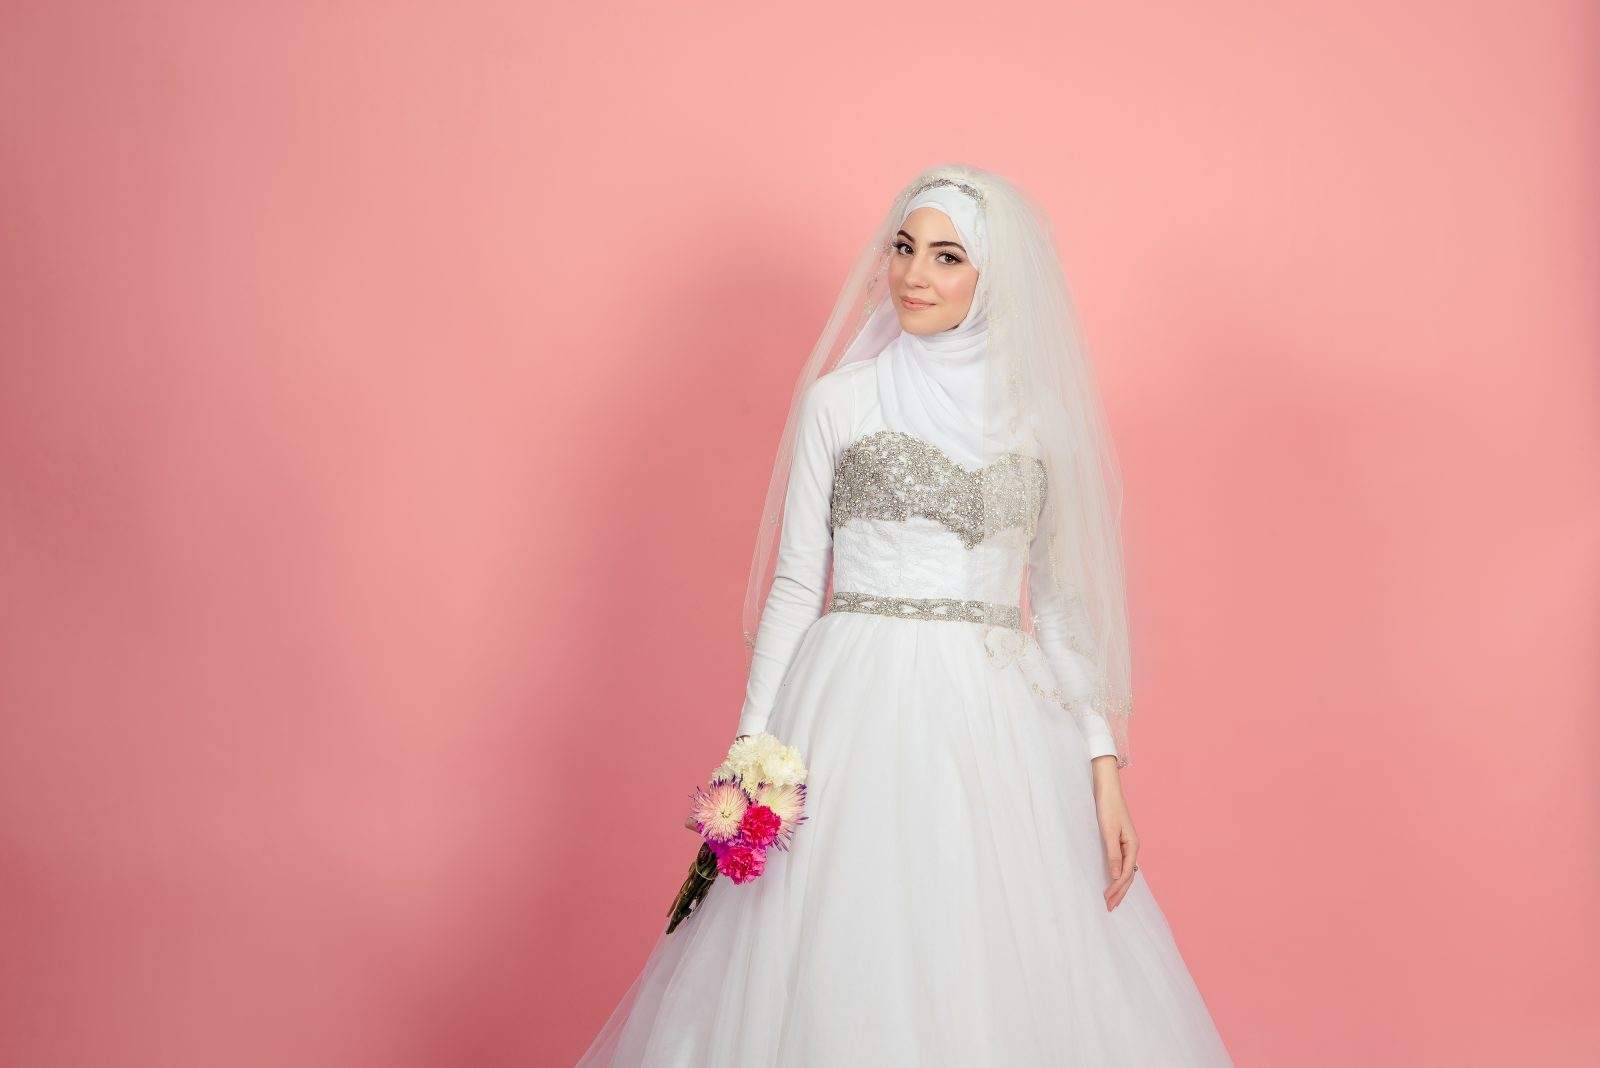 wedding day hijab inspiration - hijabi bride - blancelle